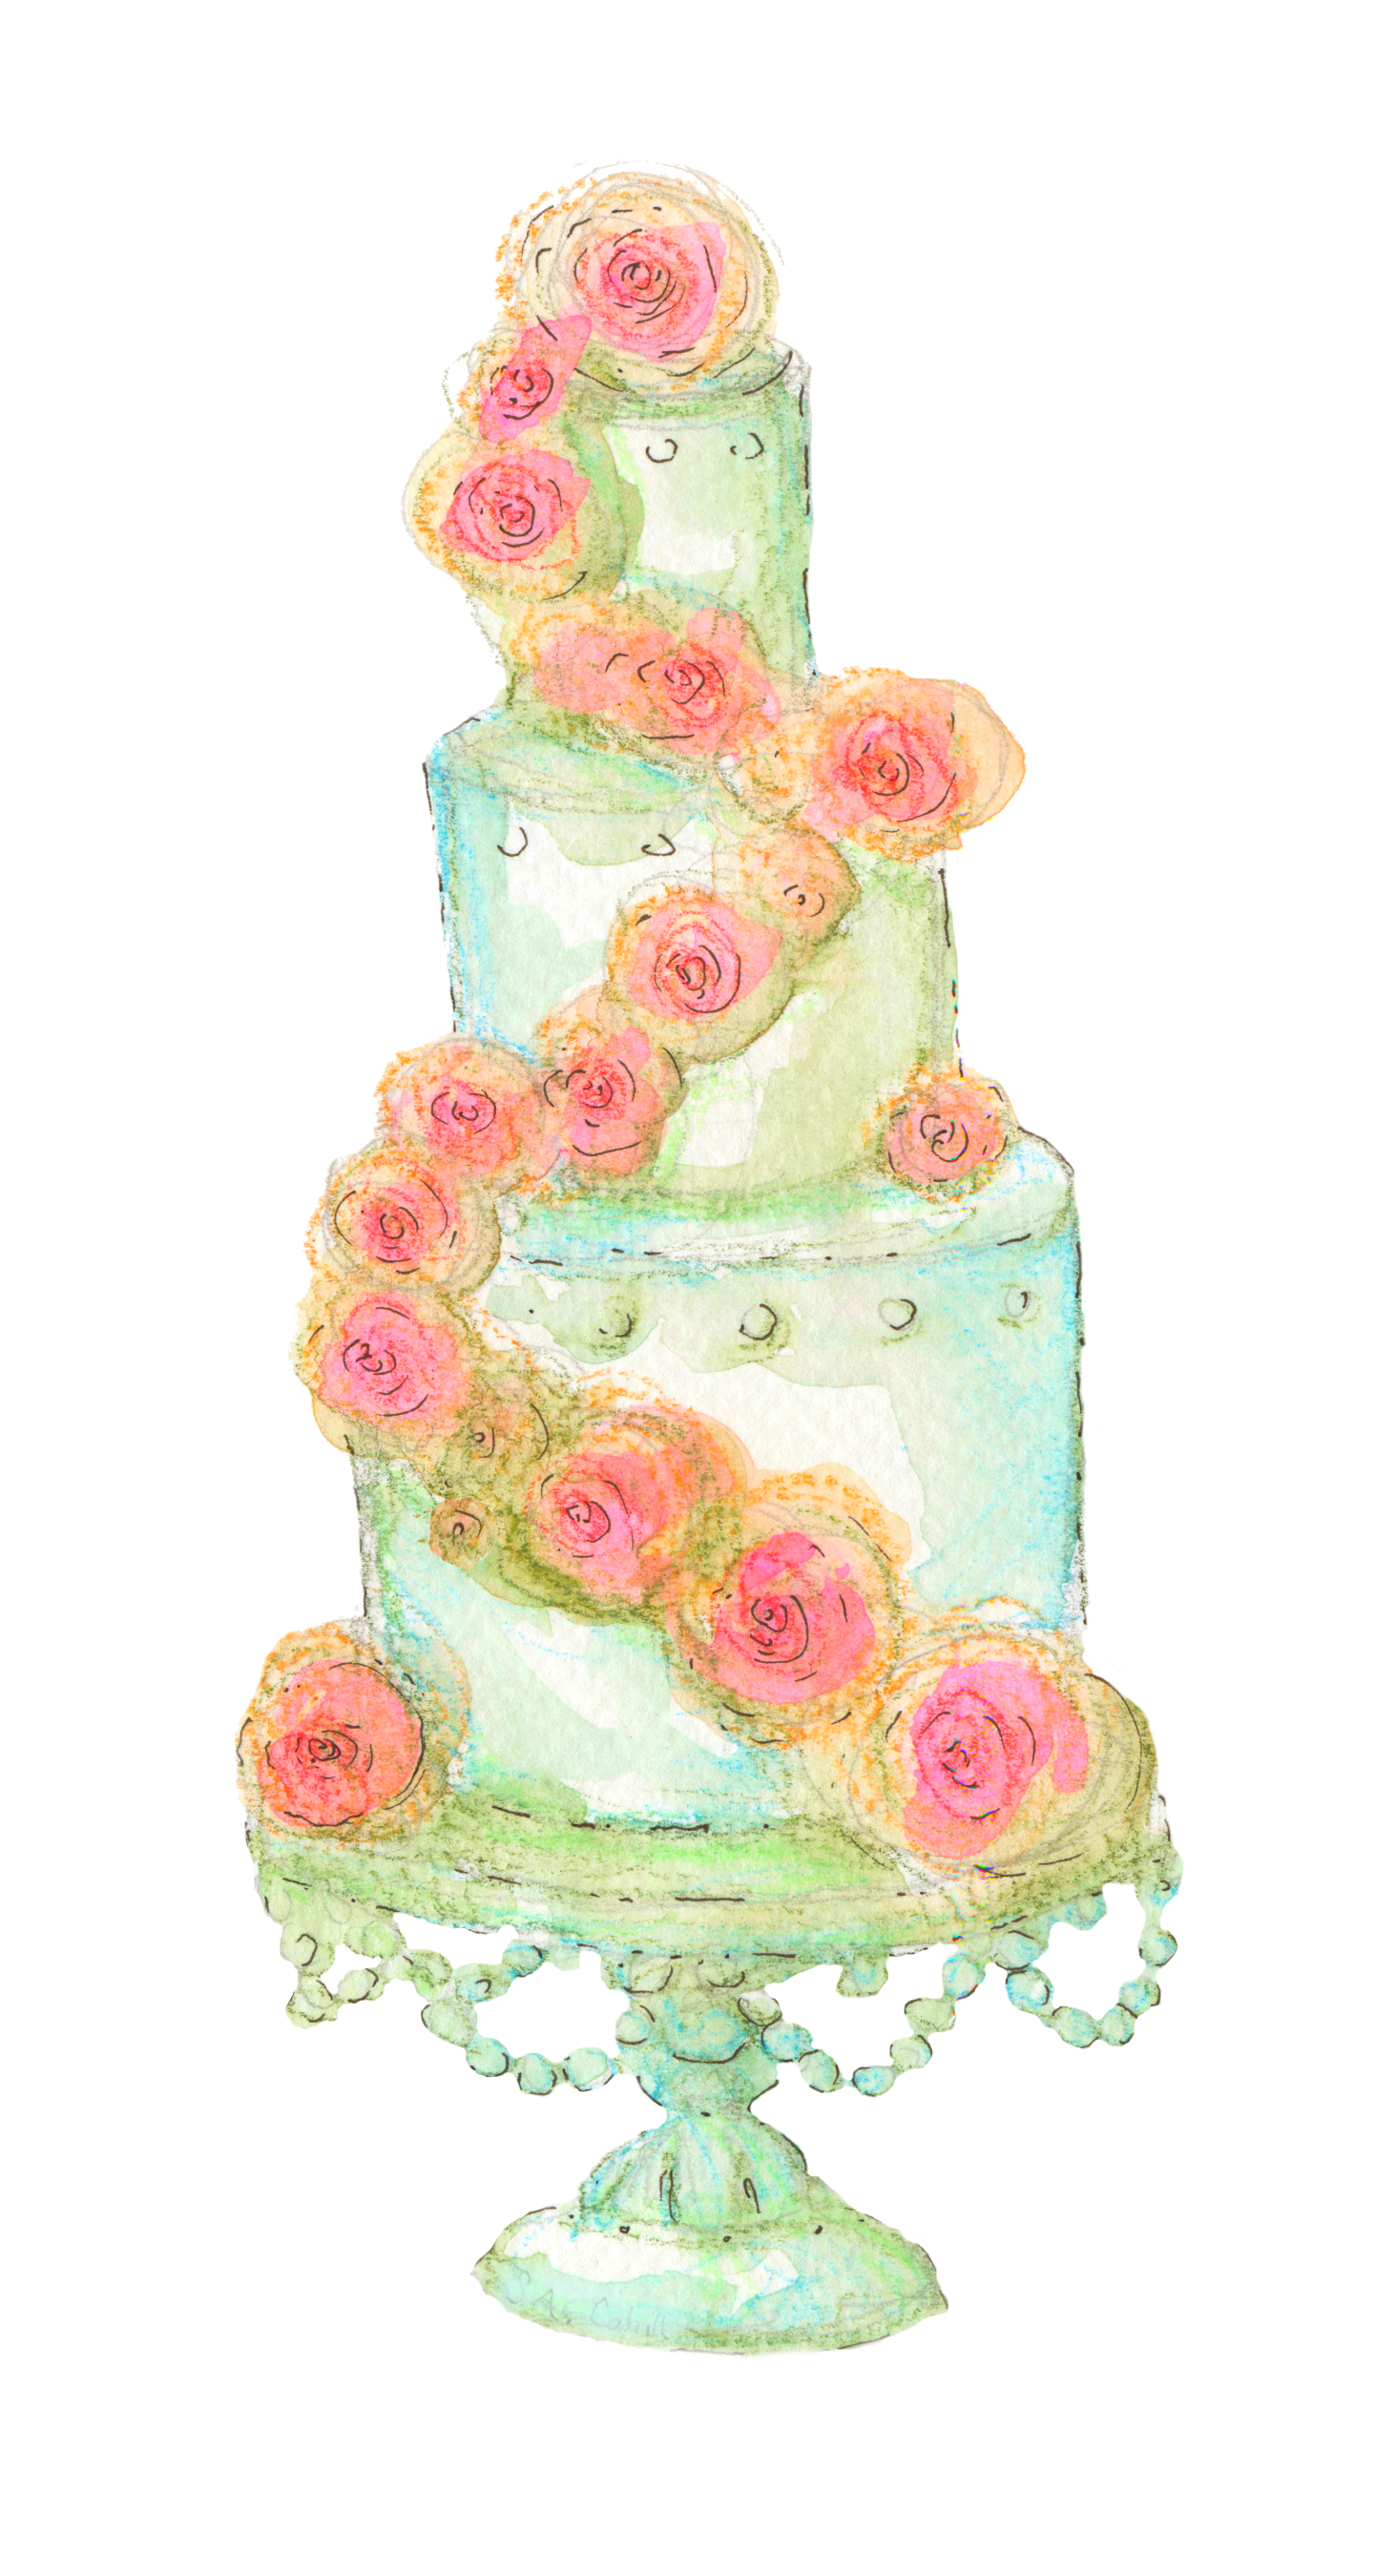 https://0901.nccdn.net/4_2/000/000/038/2d3/weddingcakepinkflowers-1462x2700.png